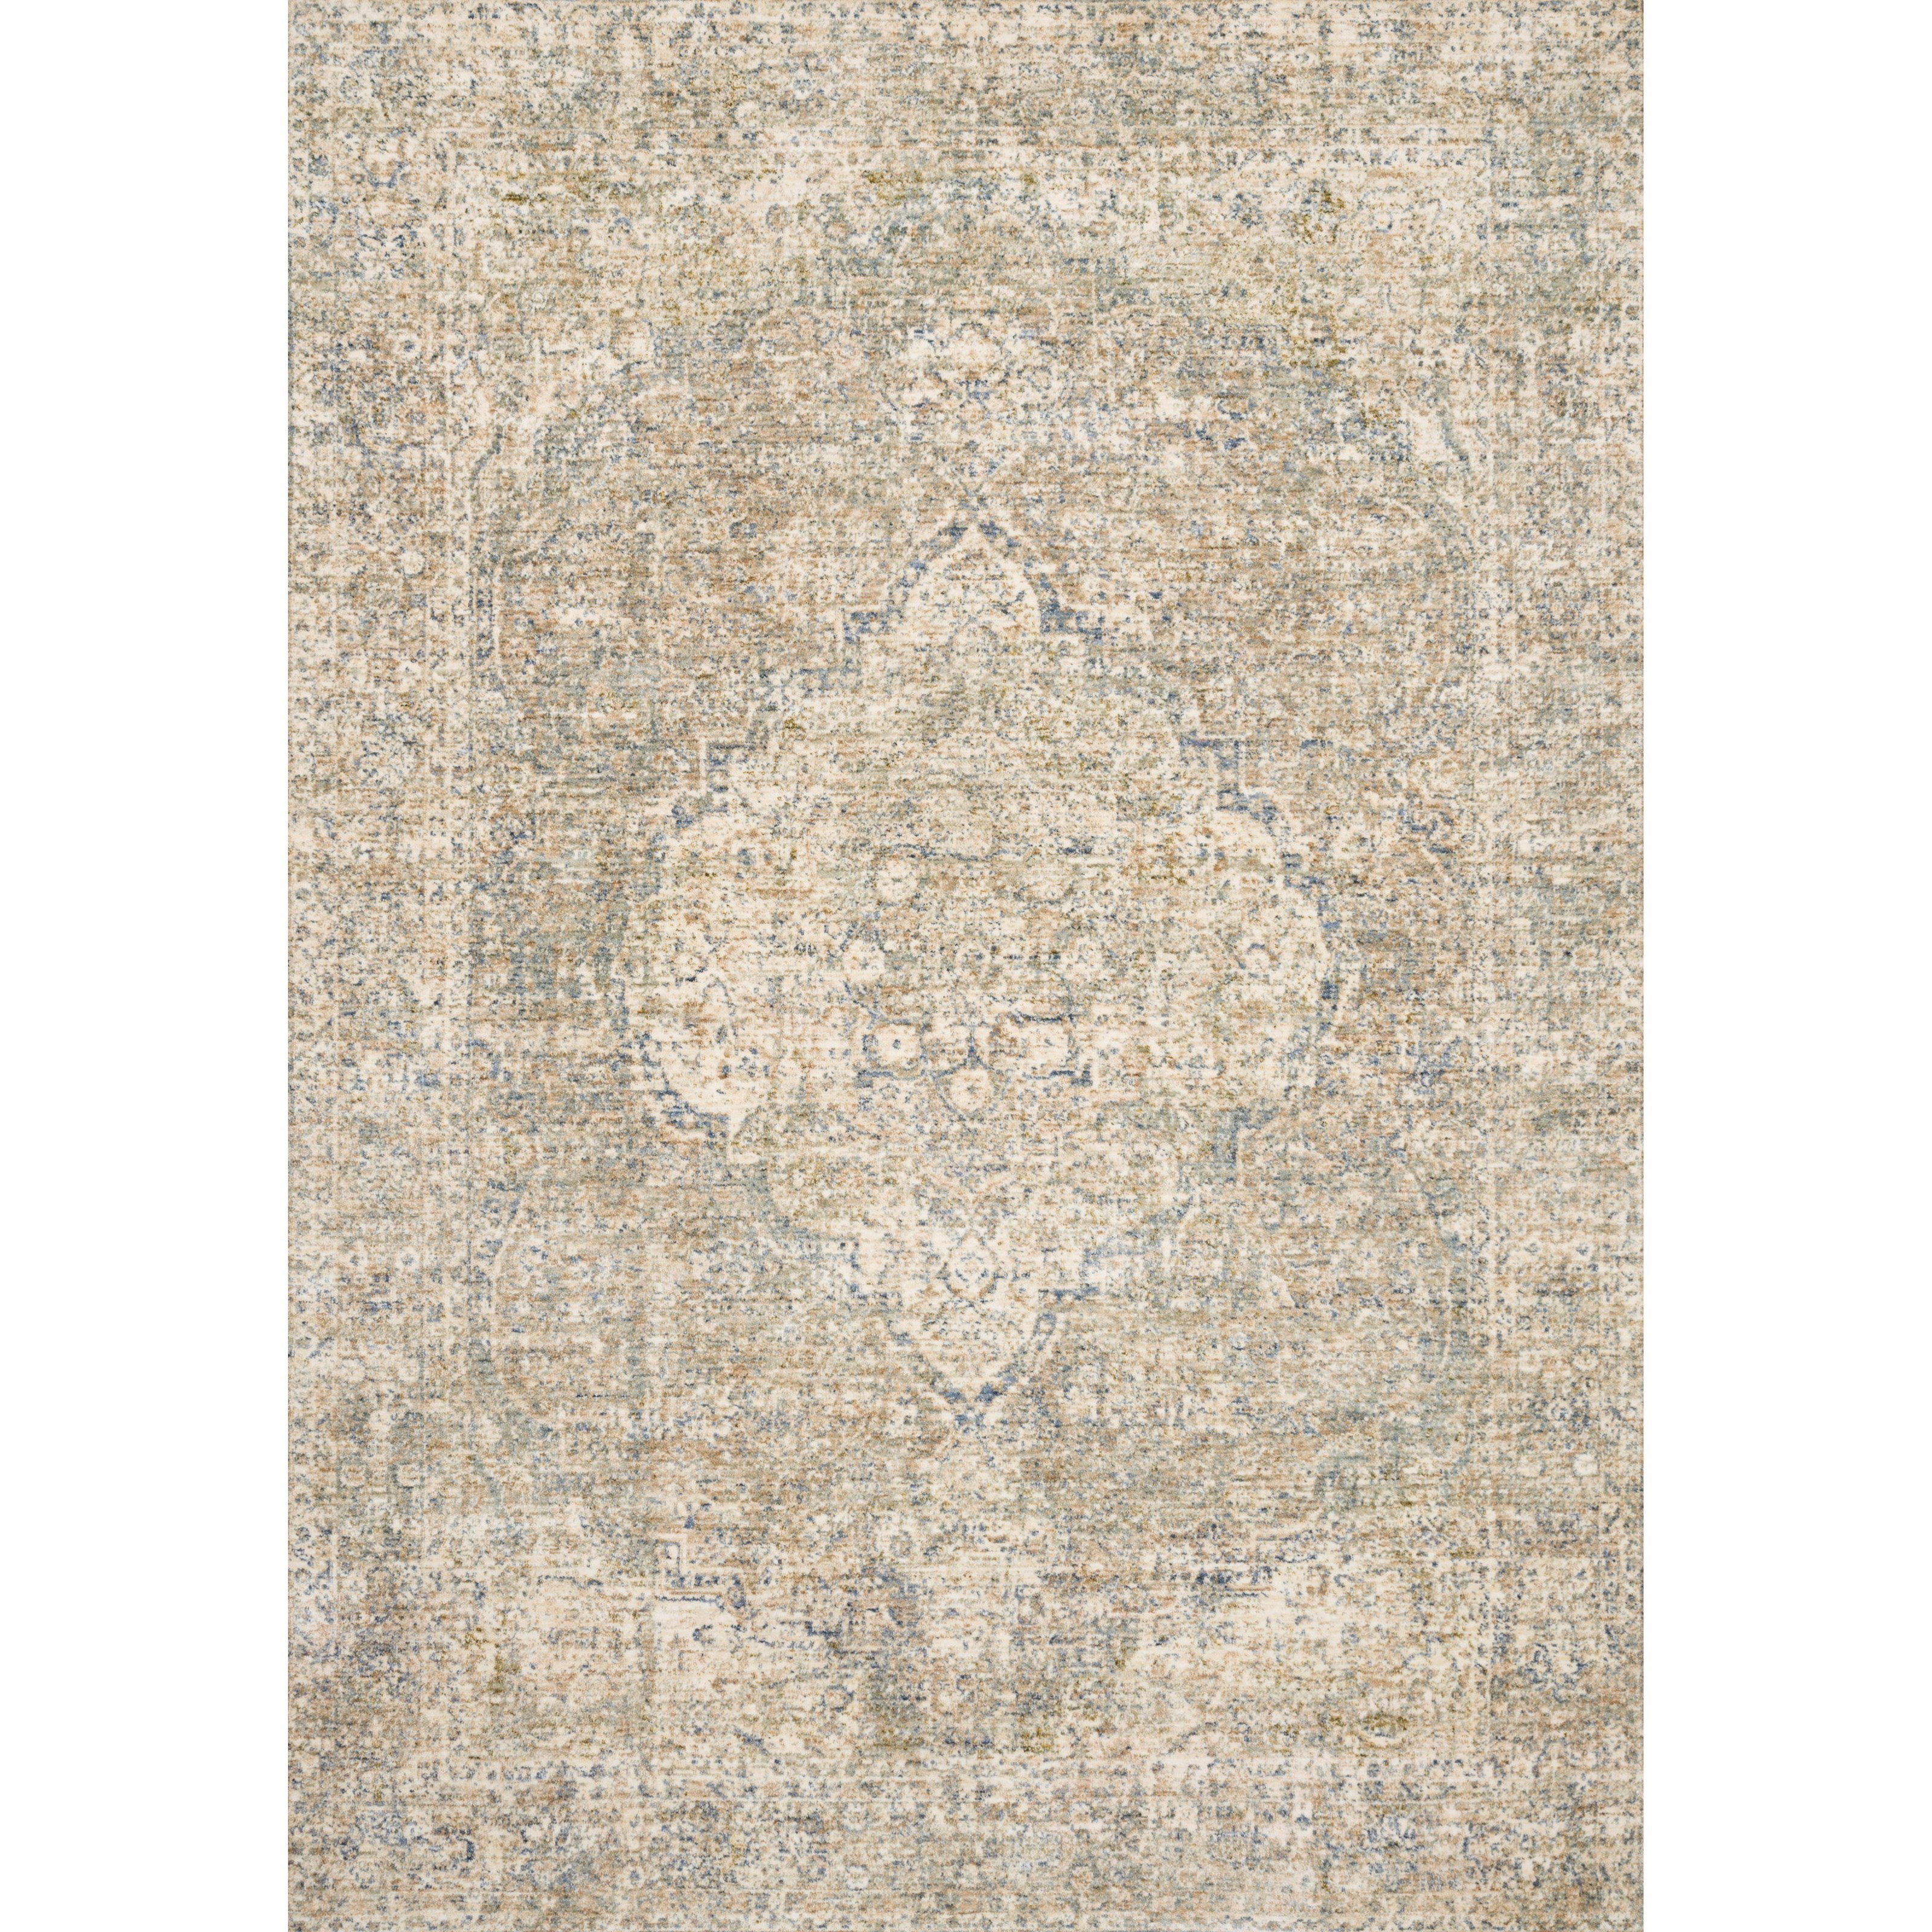 "Revere 7'10"" x 7'10"" Round Granite / Blue Rug by Loloi Rugs at Belfort Furniture"